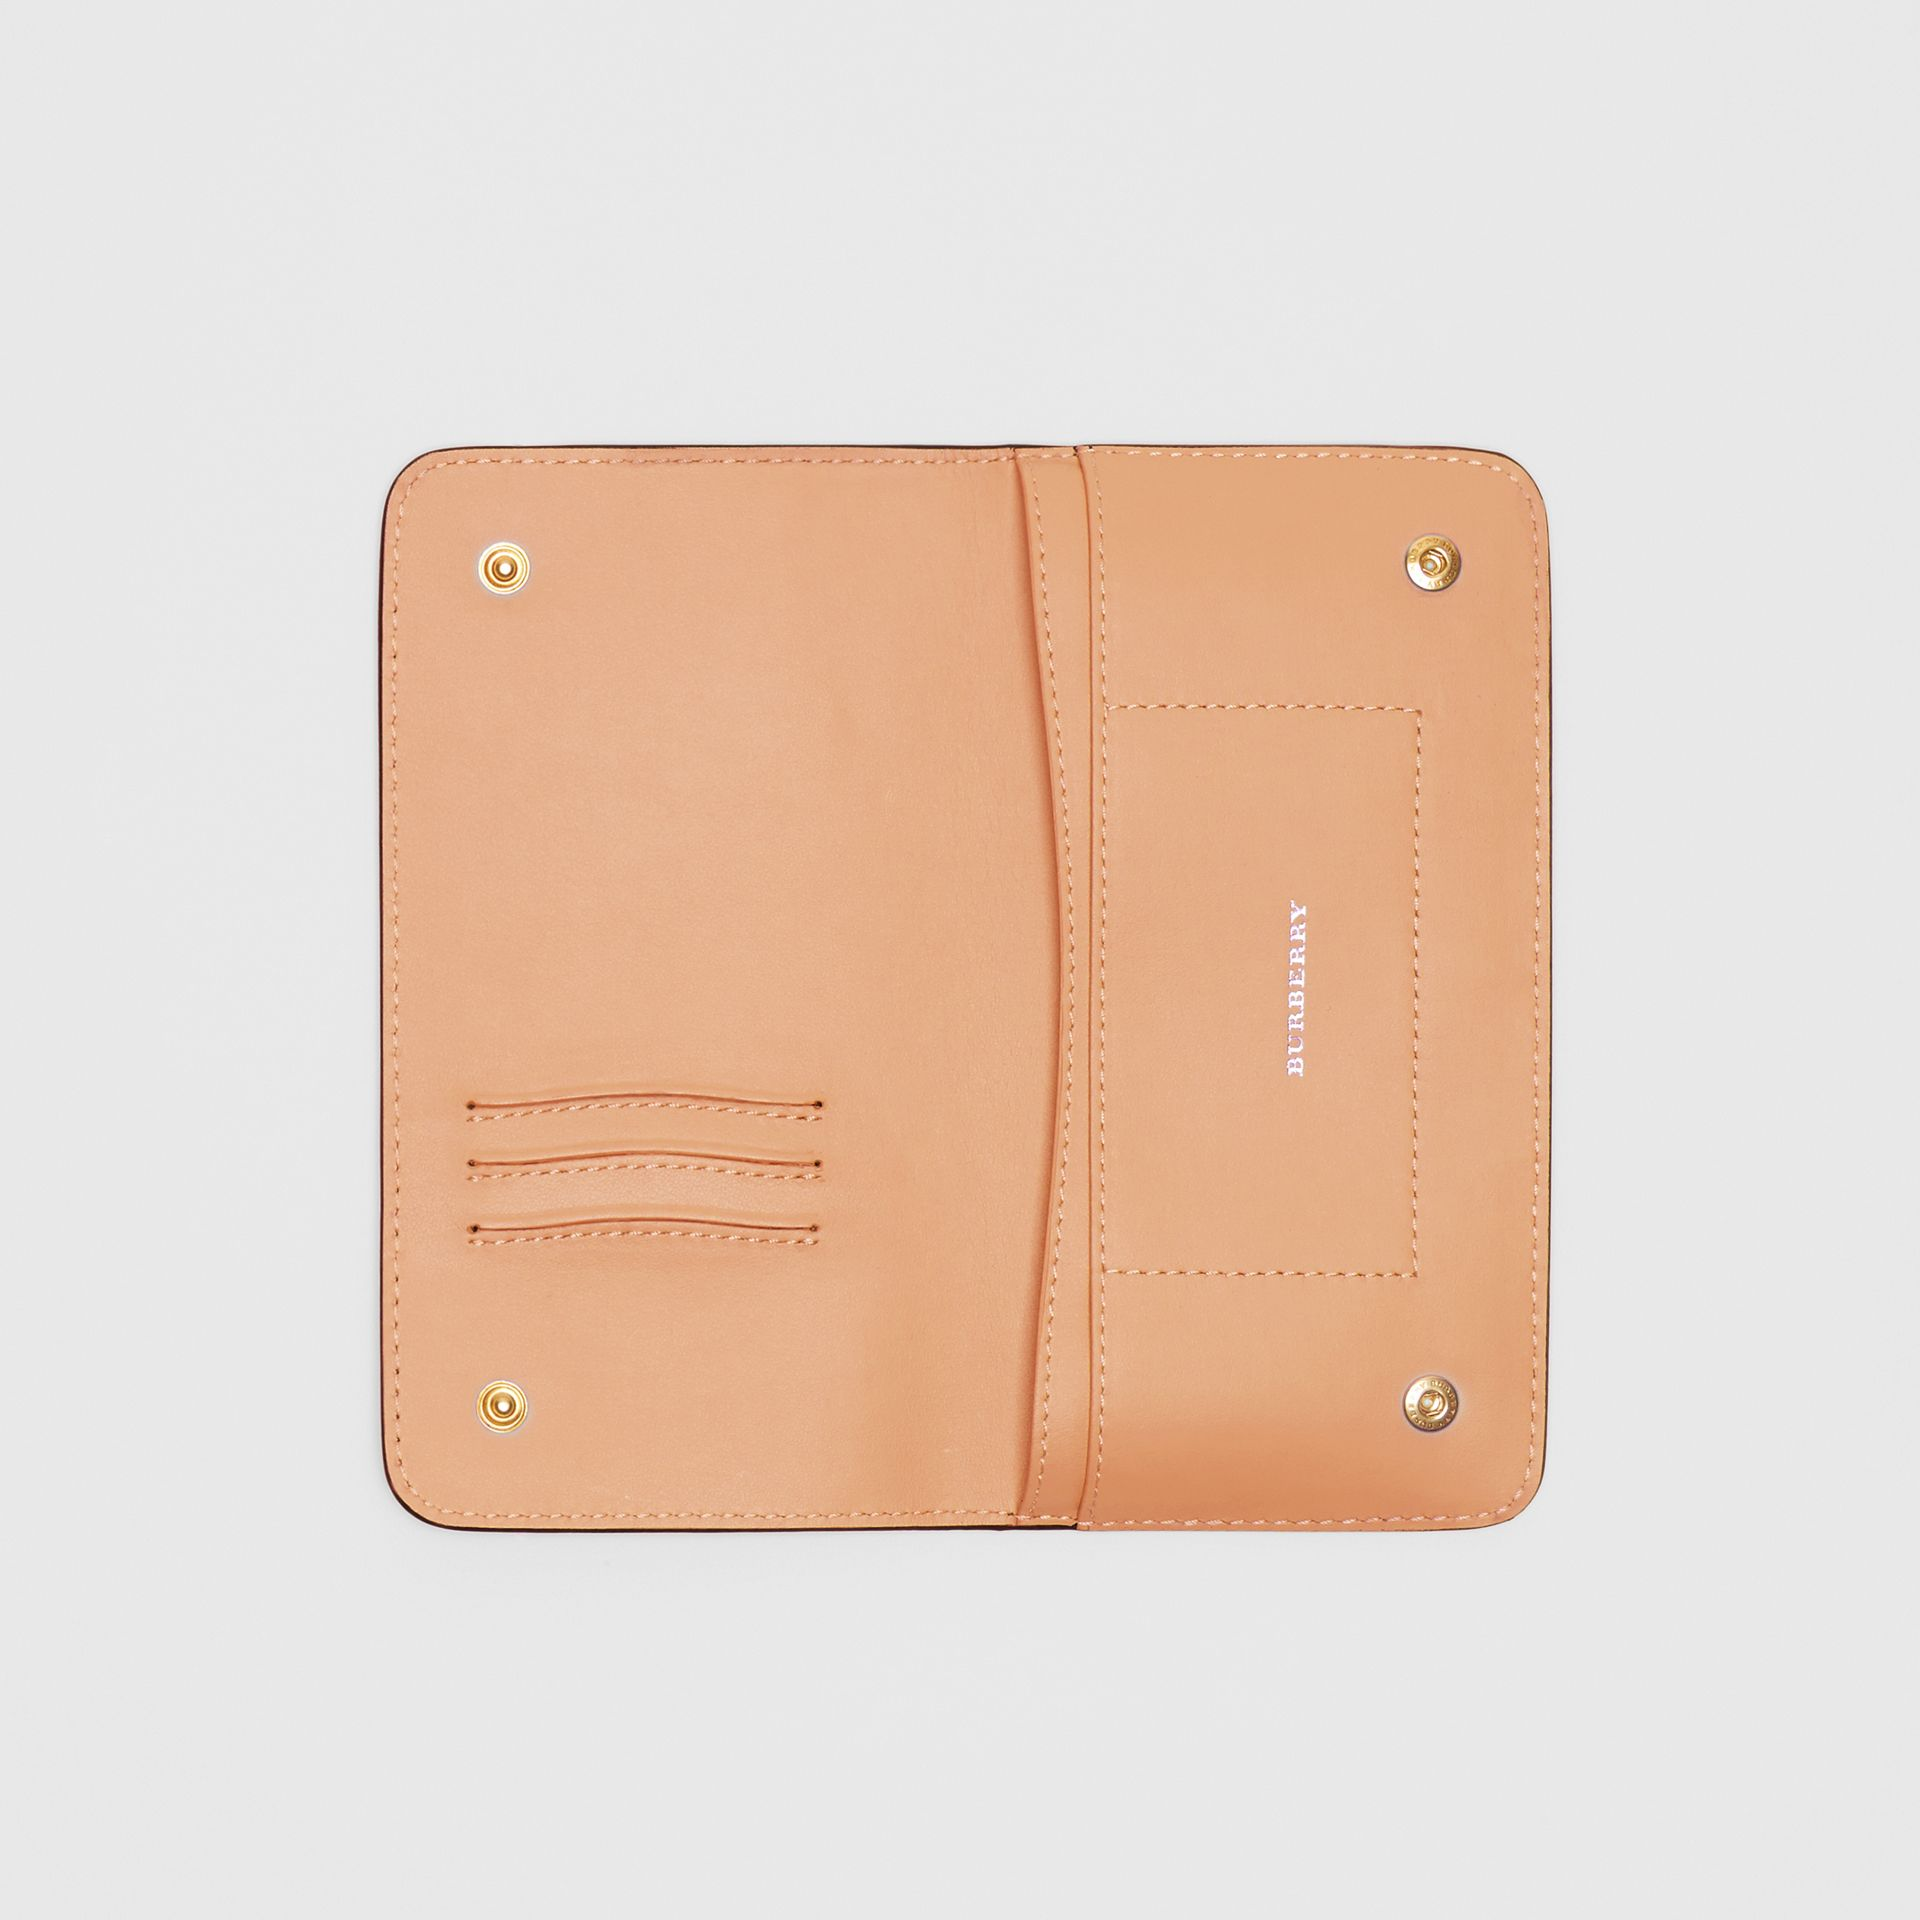 EKD Leather Phone Wallet in Light Camel - Women | Burberry Singapore - gallery image 2